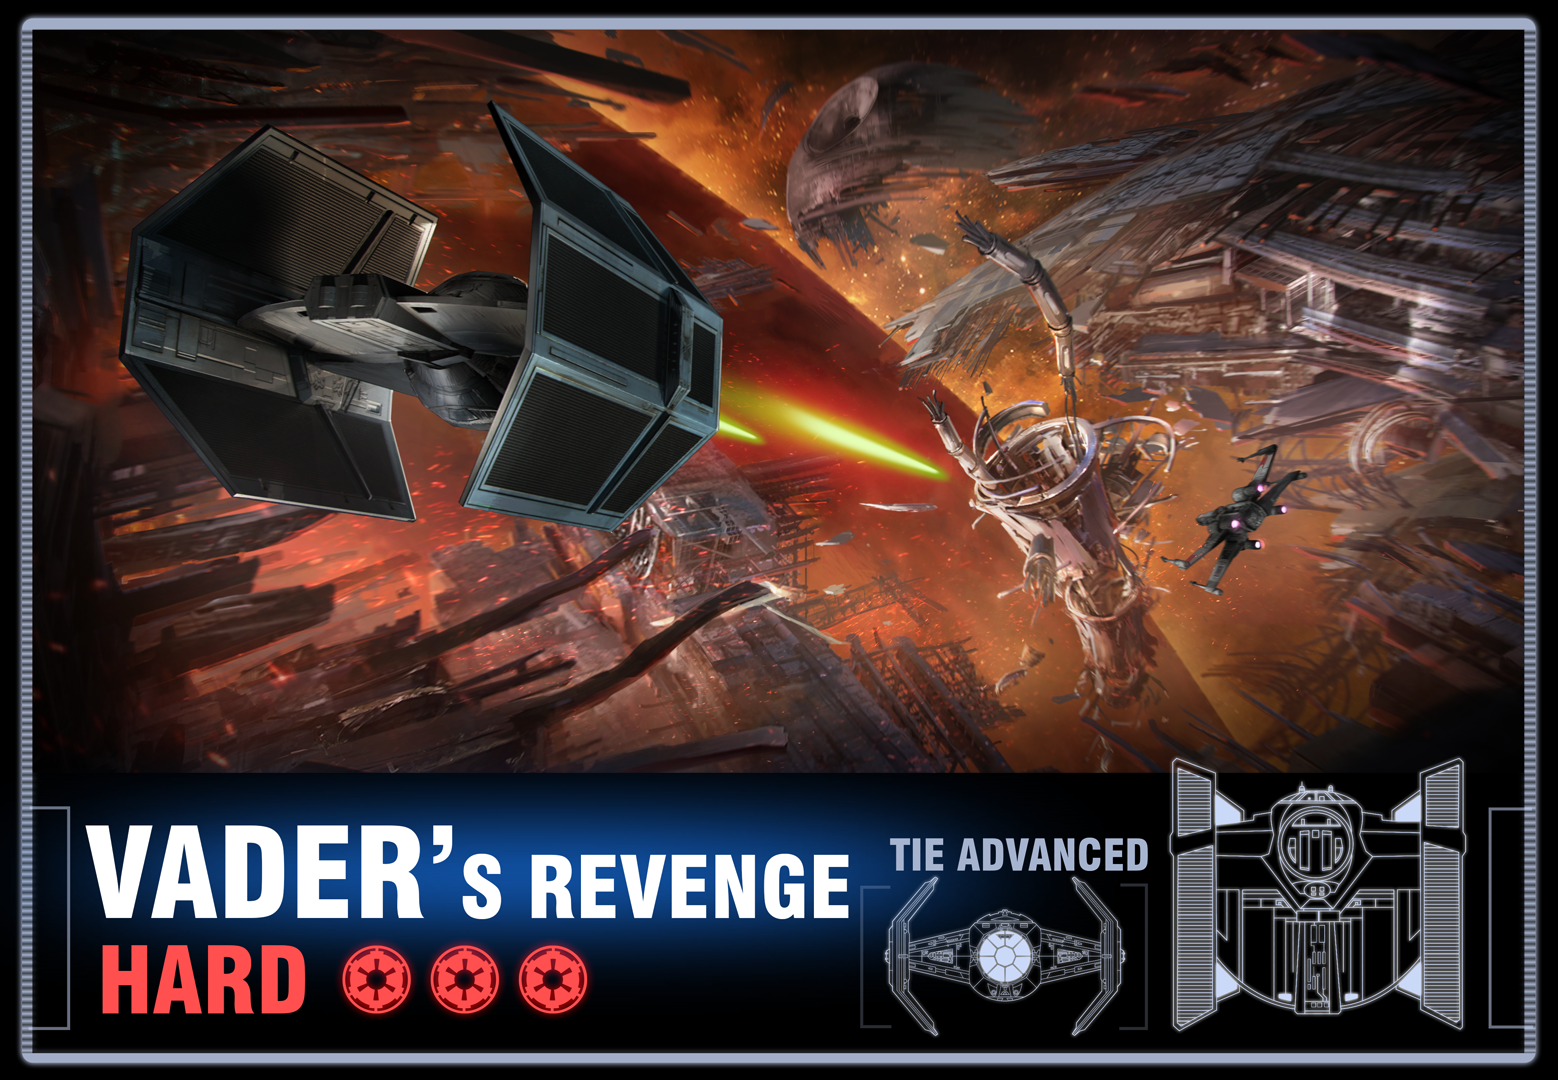 Star Wars returns to the arcade with Star Wars Battle Pod ...